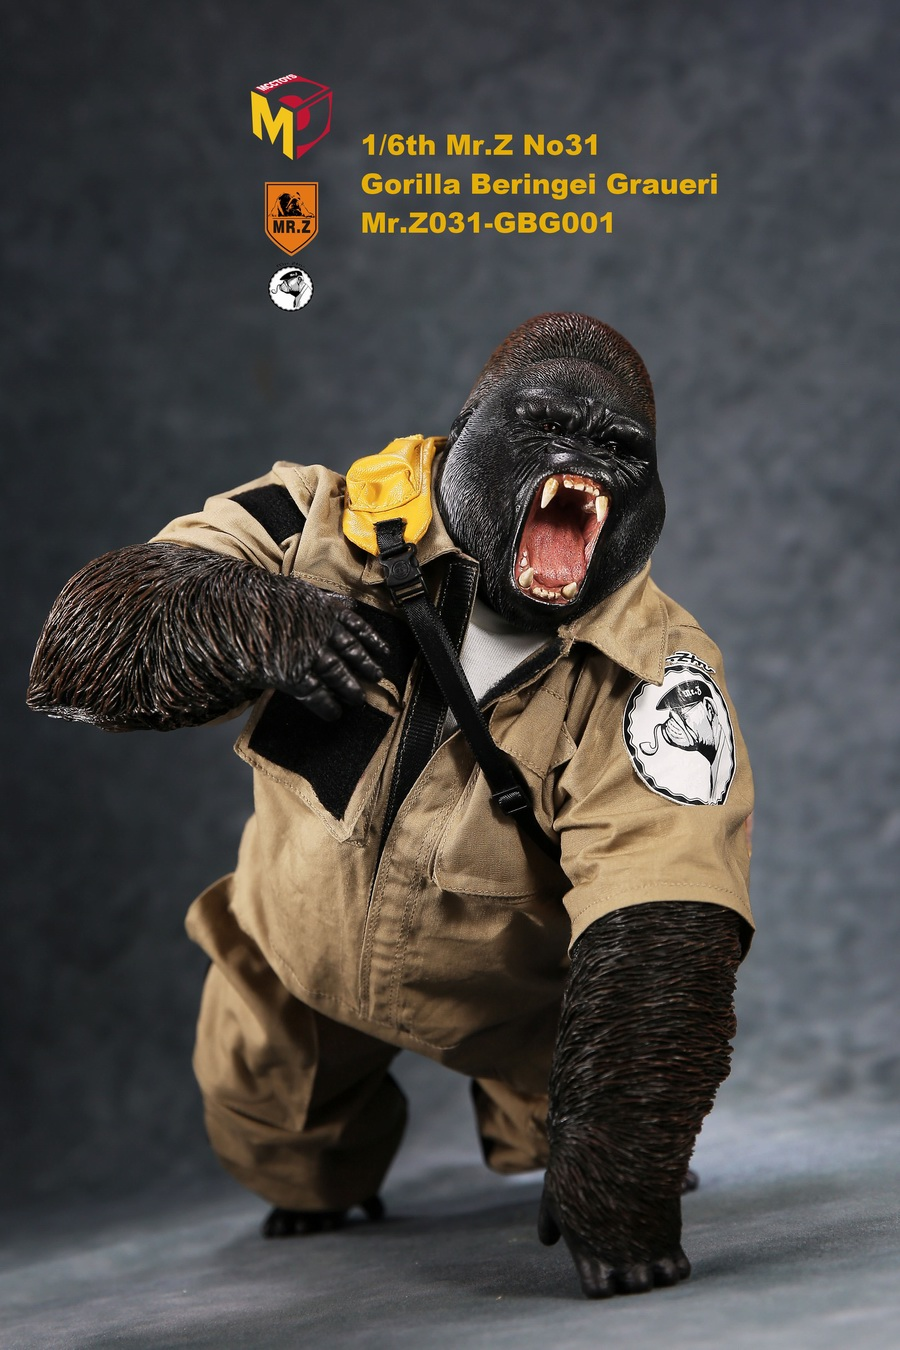 NEW PRODUCT: Mr.Z new product: 1/6 simulation animal model 31st bomb - African lowland gorilla (all 2 heads can be changed to upper limbs) 10101411